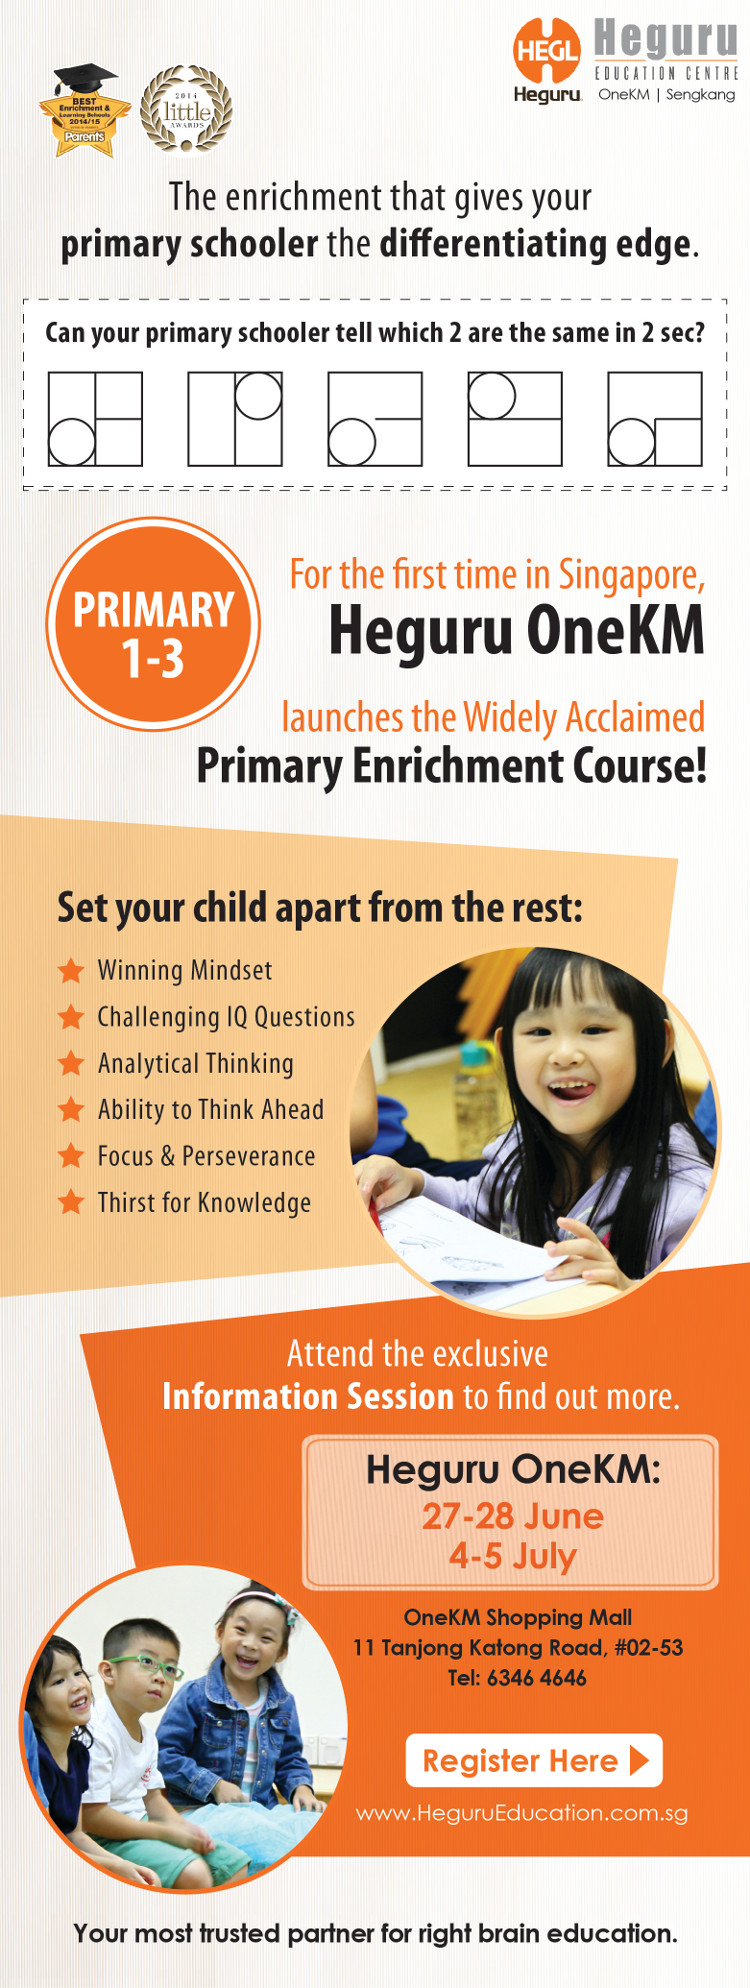 Heguru OneKM Primary School Enrichment Course